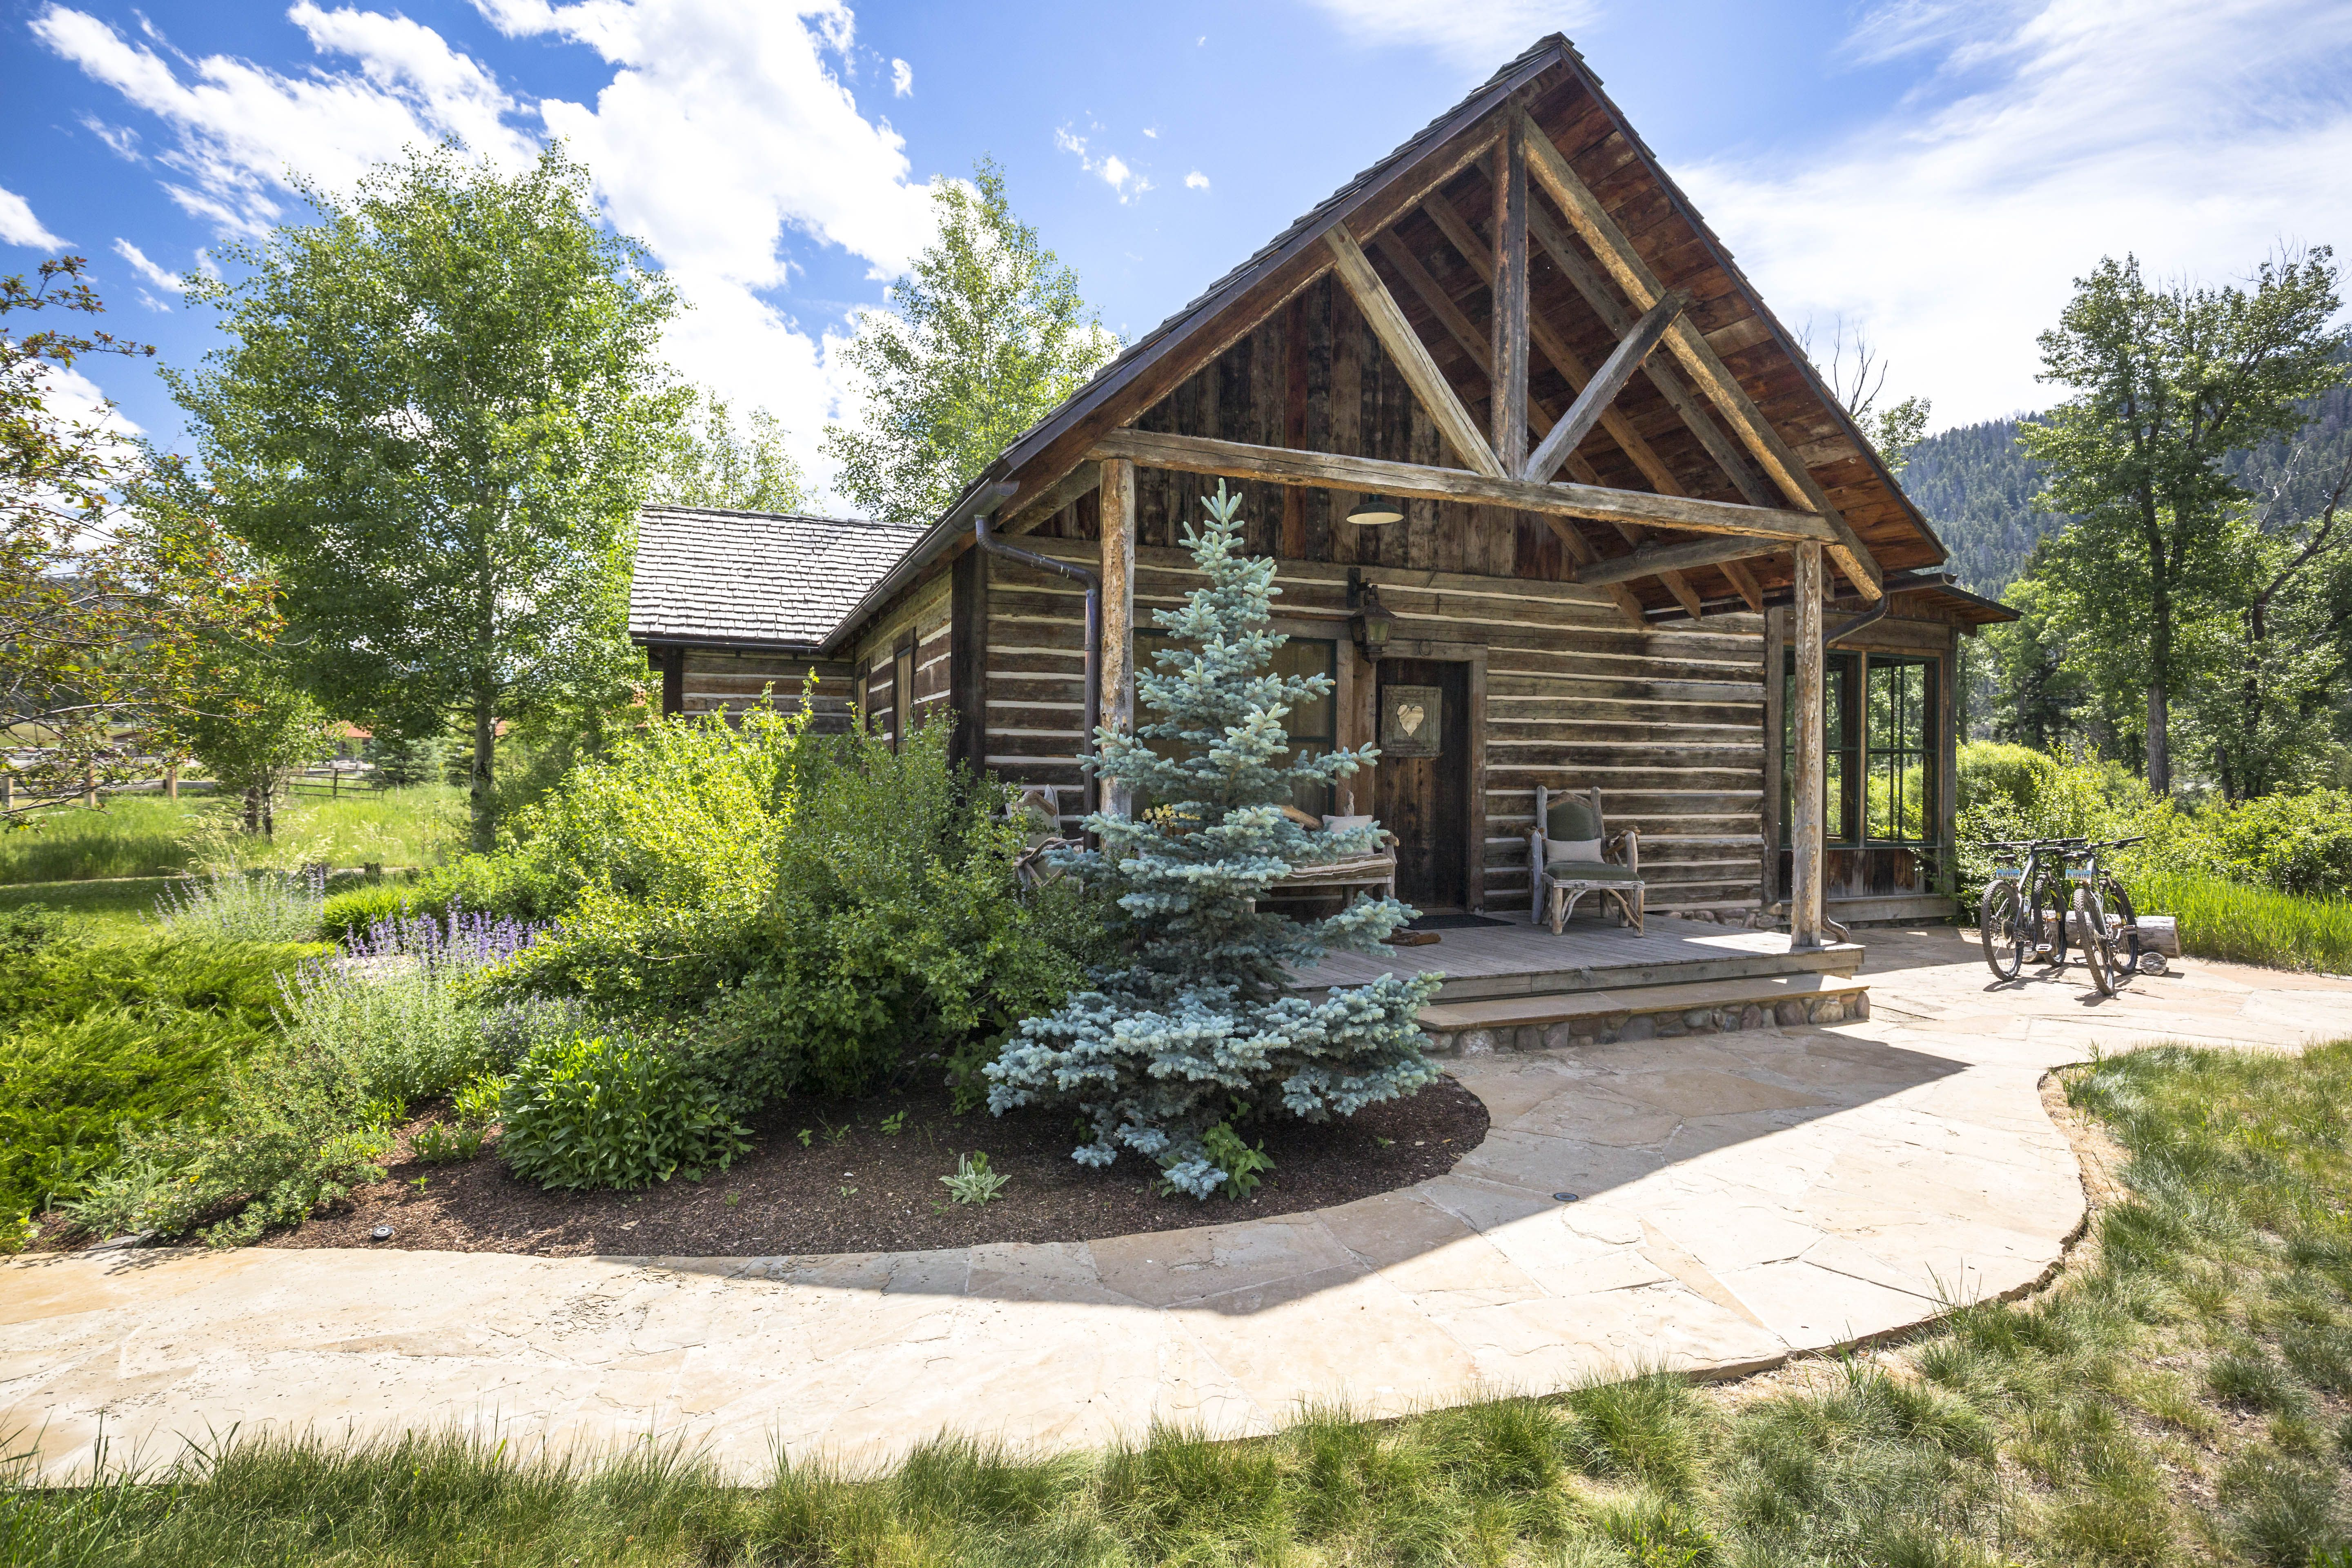 Embrace your inner cowboy (or girl) at The Ranch at Rock Creek in Montana